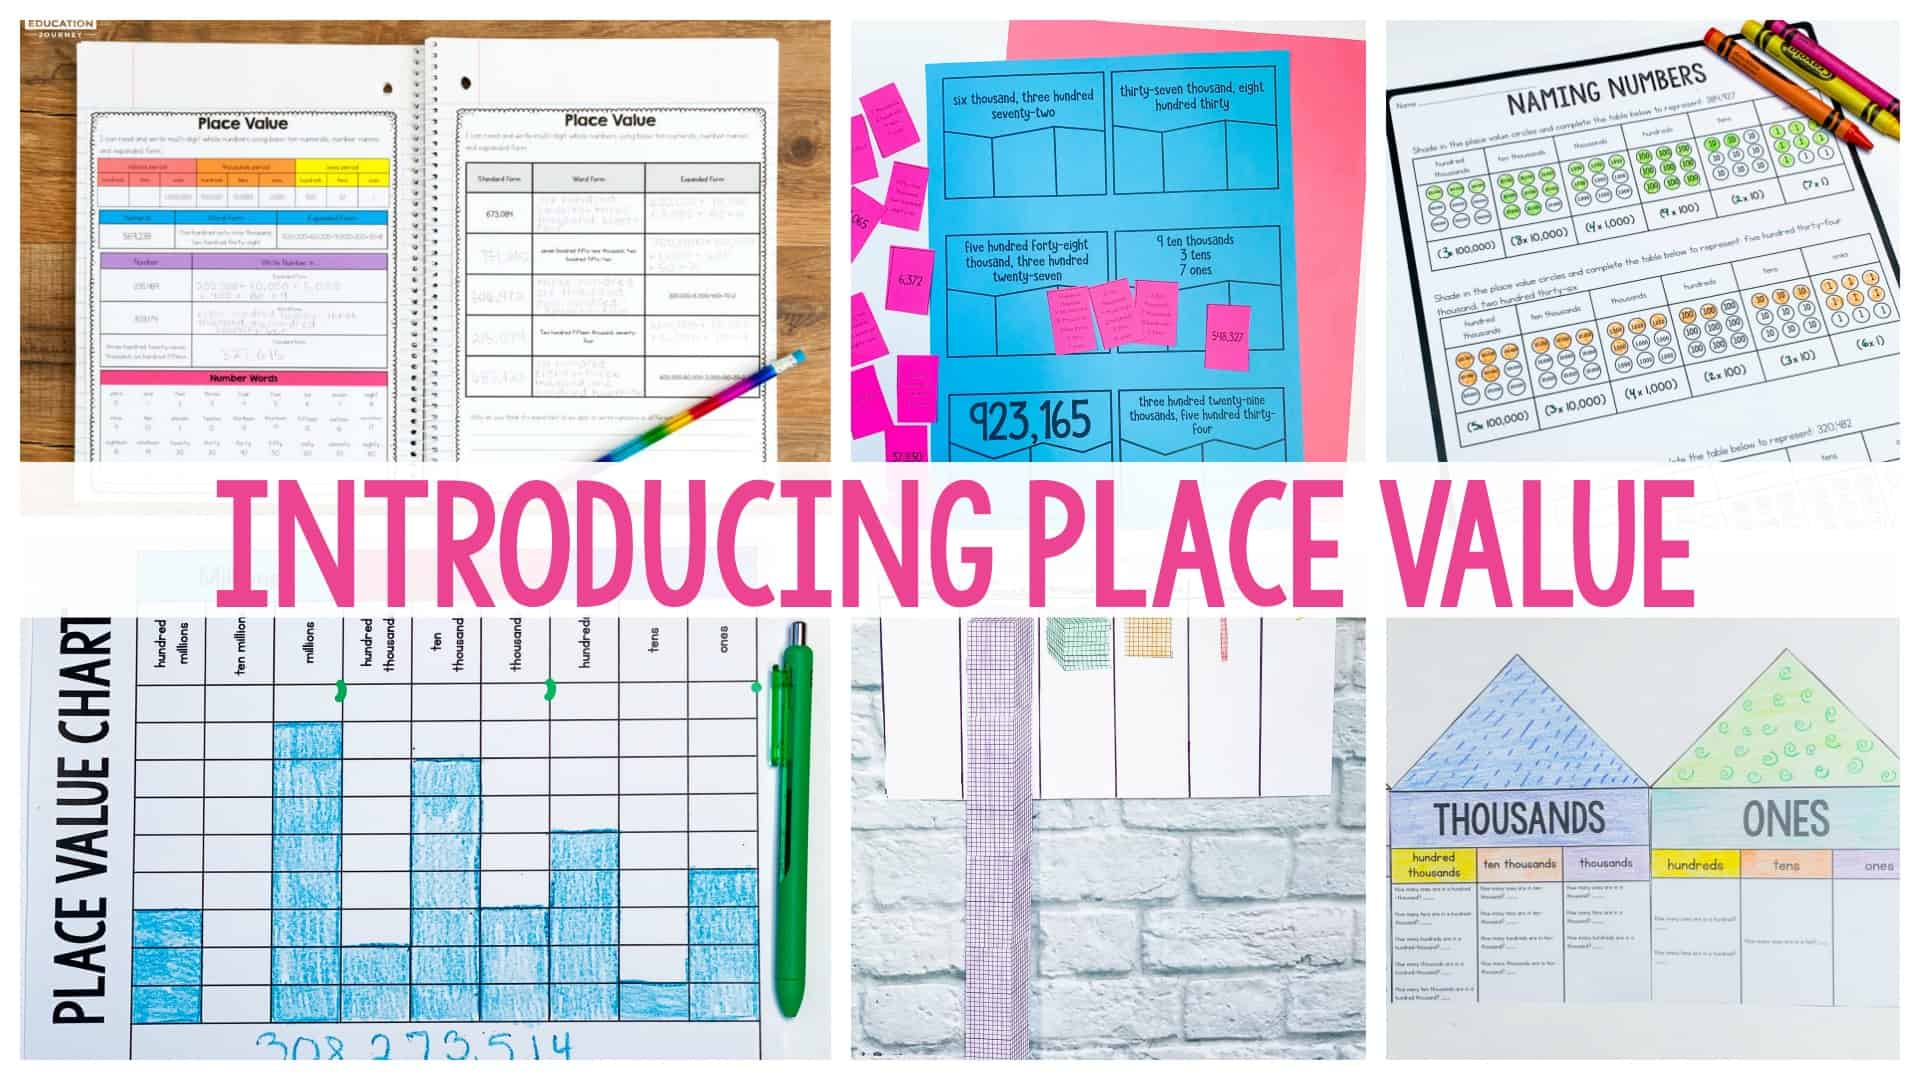 hight resolution of Introducing Place Value - Ashleigh's Education Journey